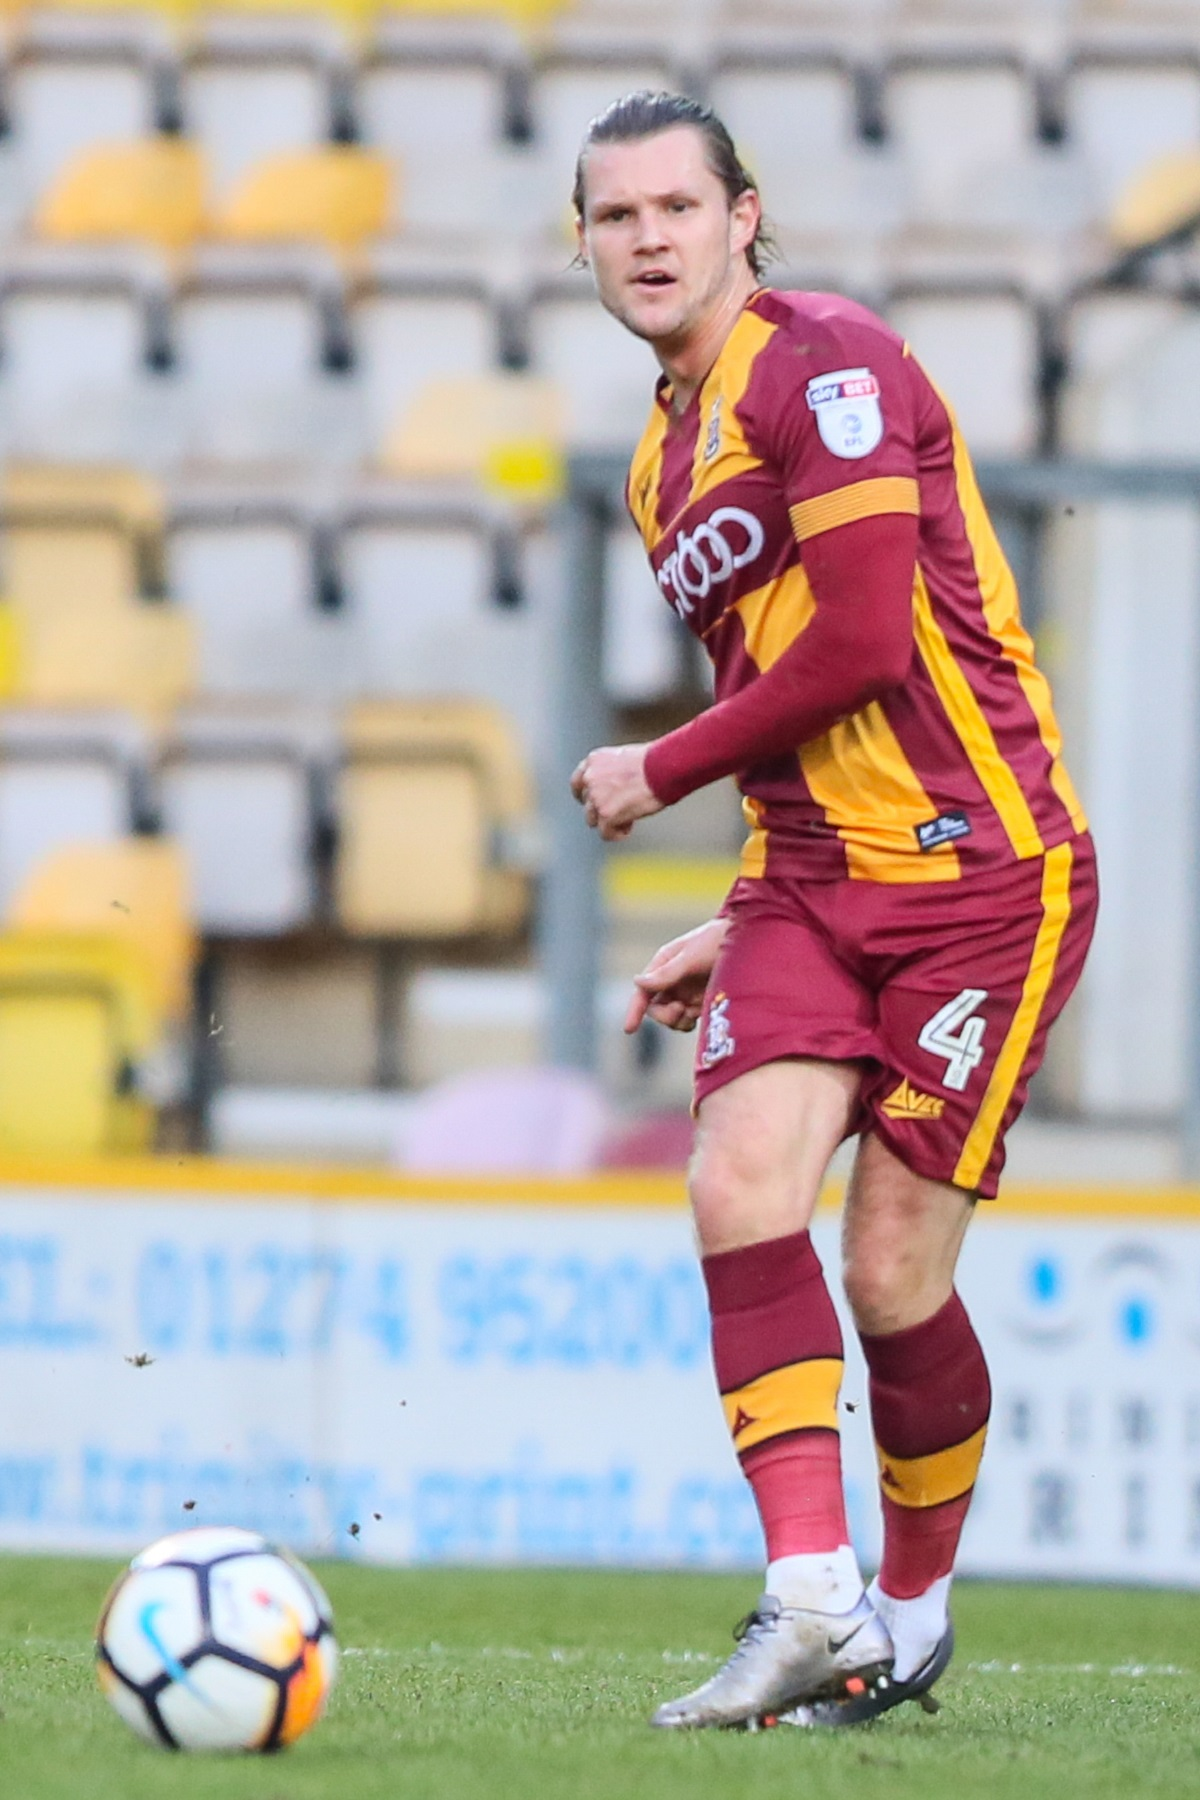 Jake Reeves came off with a groin problem on Saturday